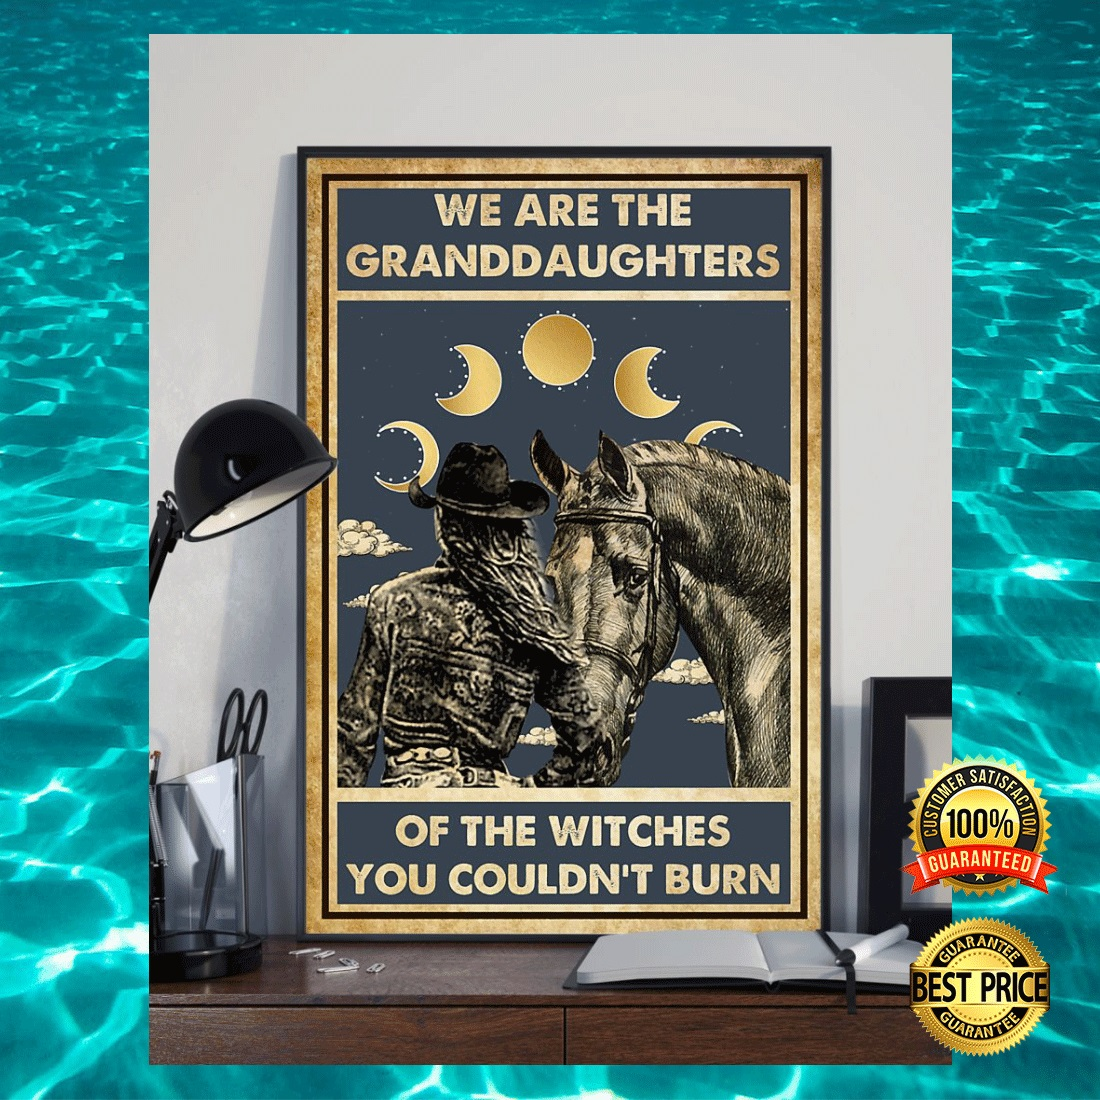 COWGIRL WE ARE THE GRANDDAUGHTERS OF THE WITCHES YOU COULDN'T BURN POSTER 4